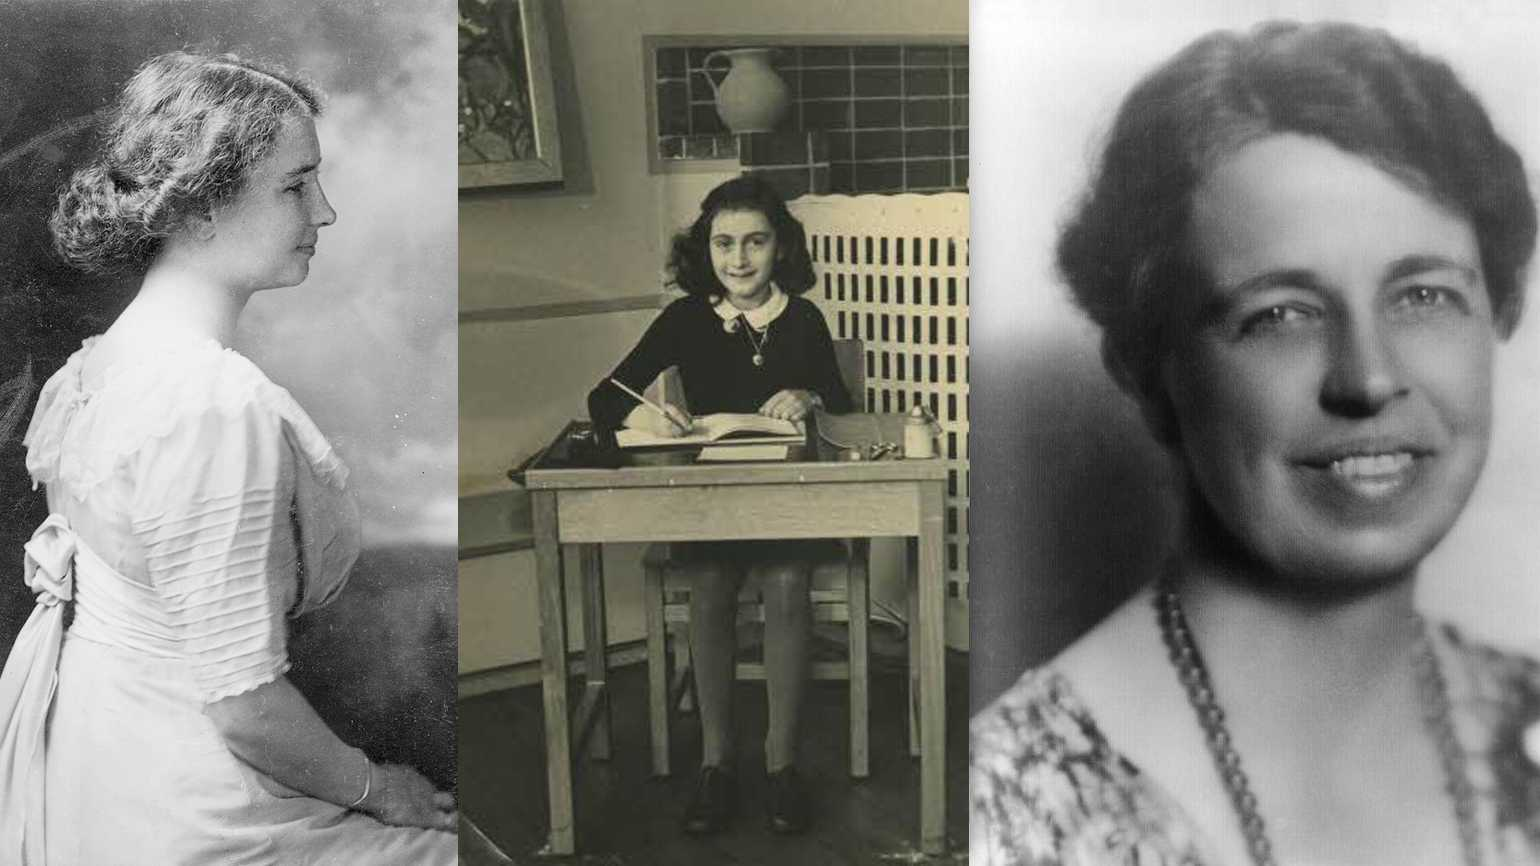 Left: Helen Keller, Middle: Anne Frank, Right: Eleanor Roosevelt